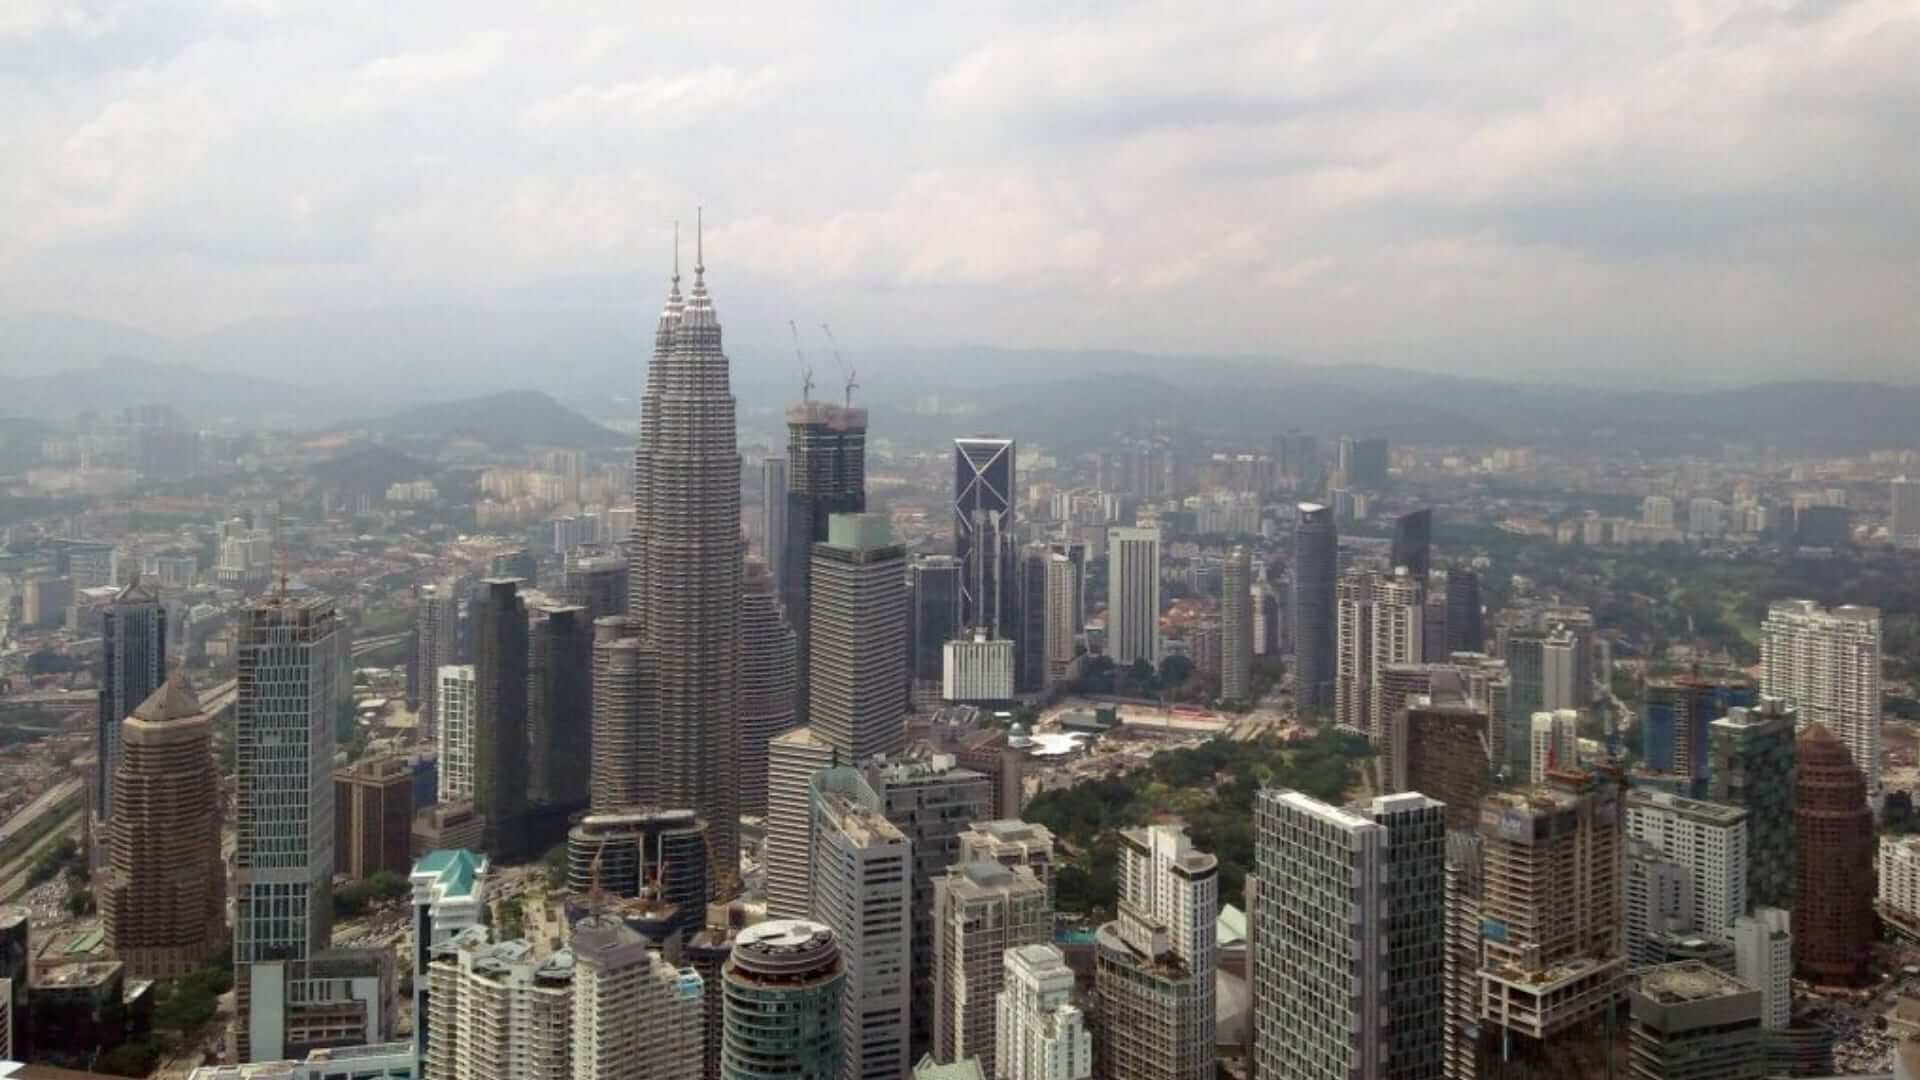 An overview of buildings during daytime in Kuala Lumpur.